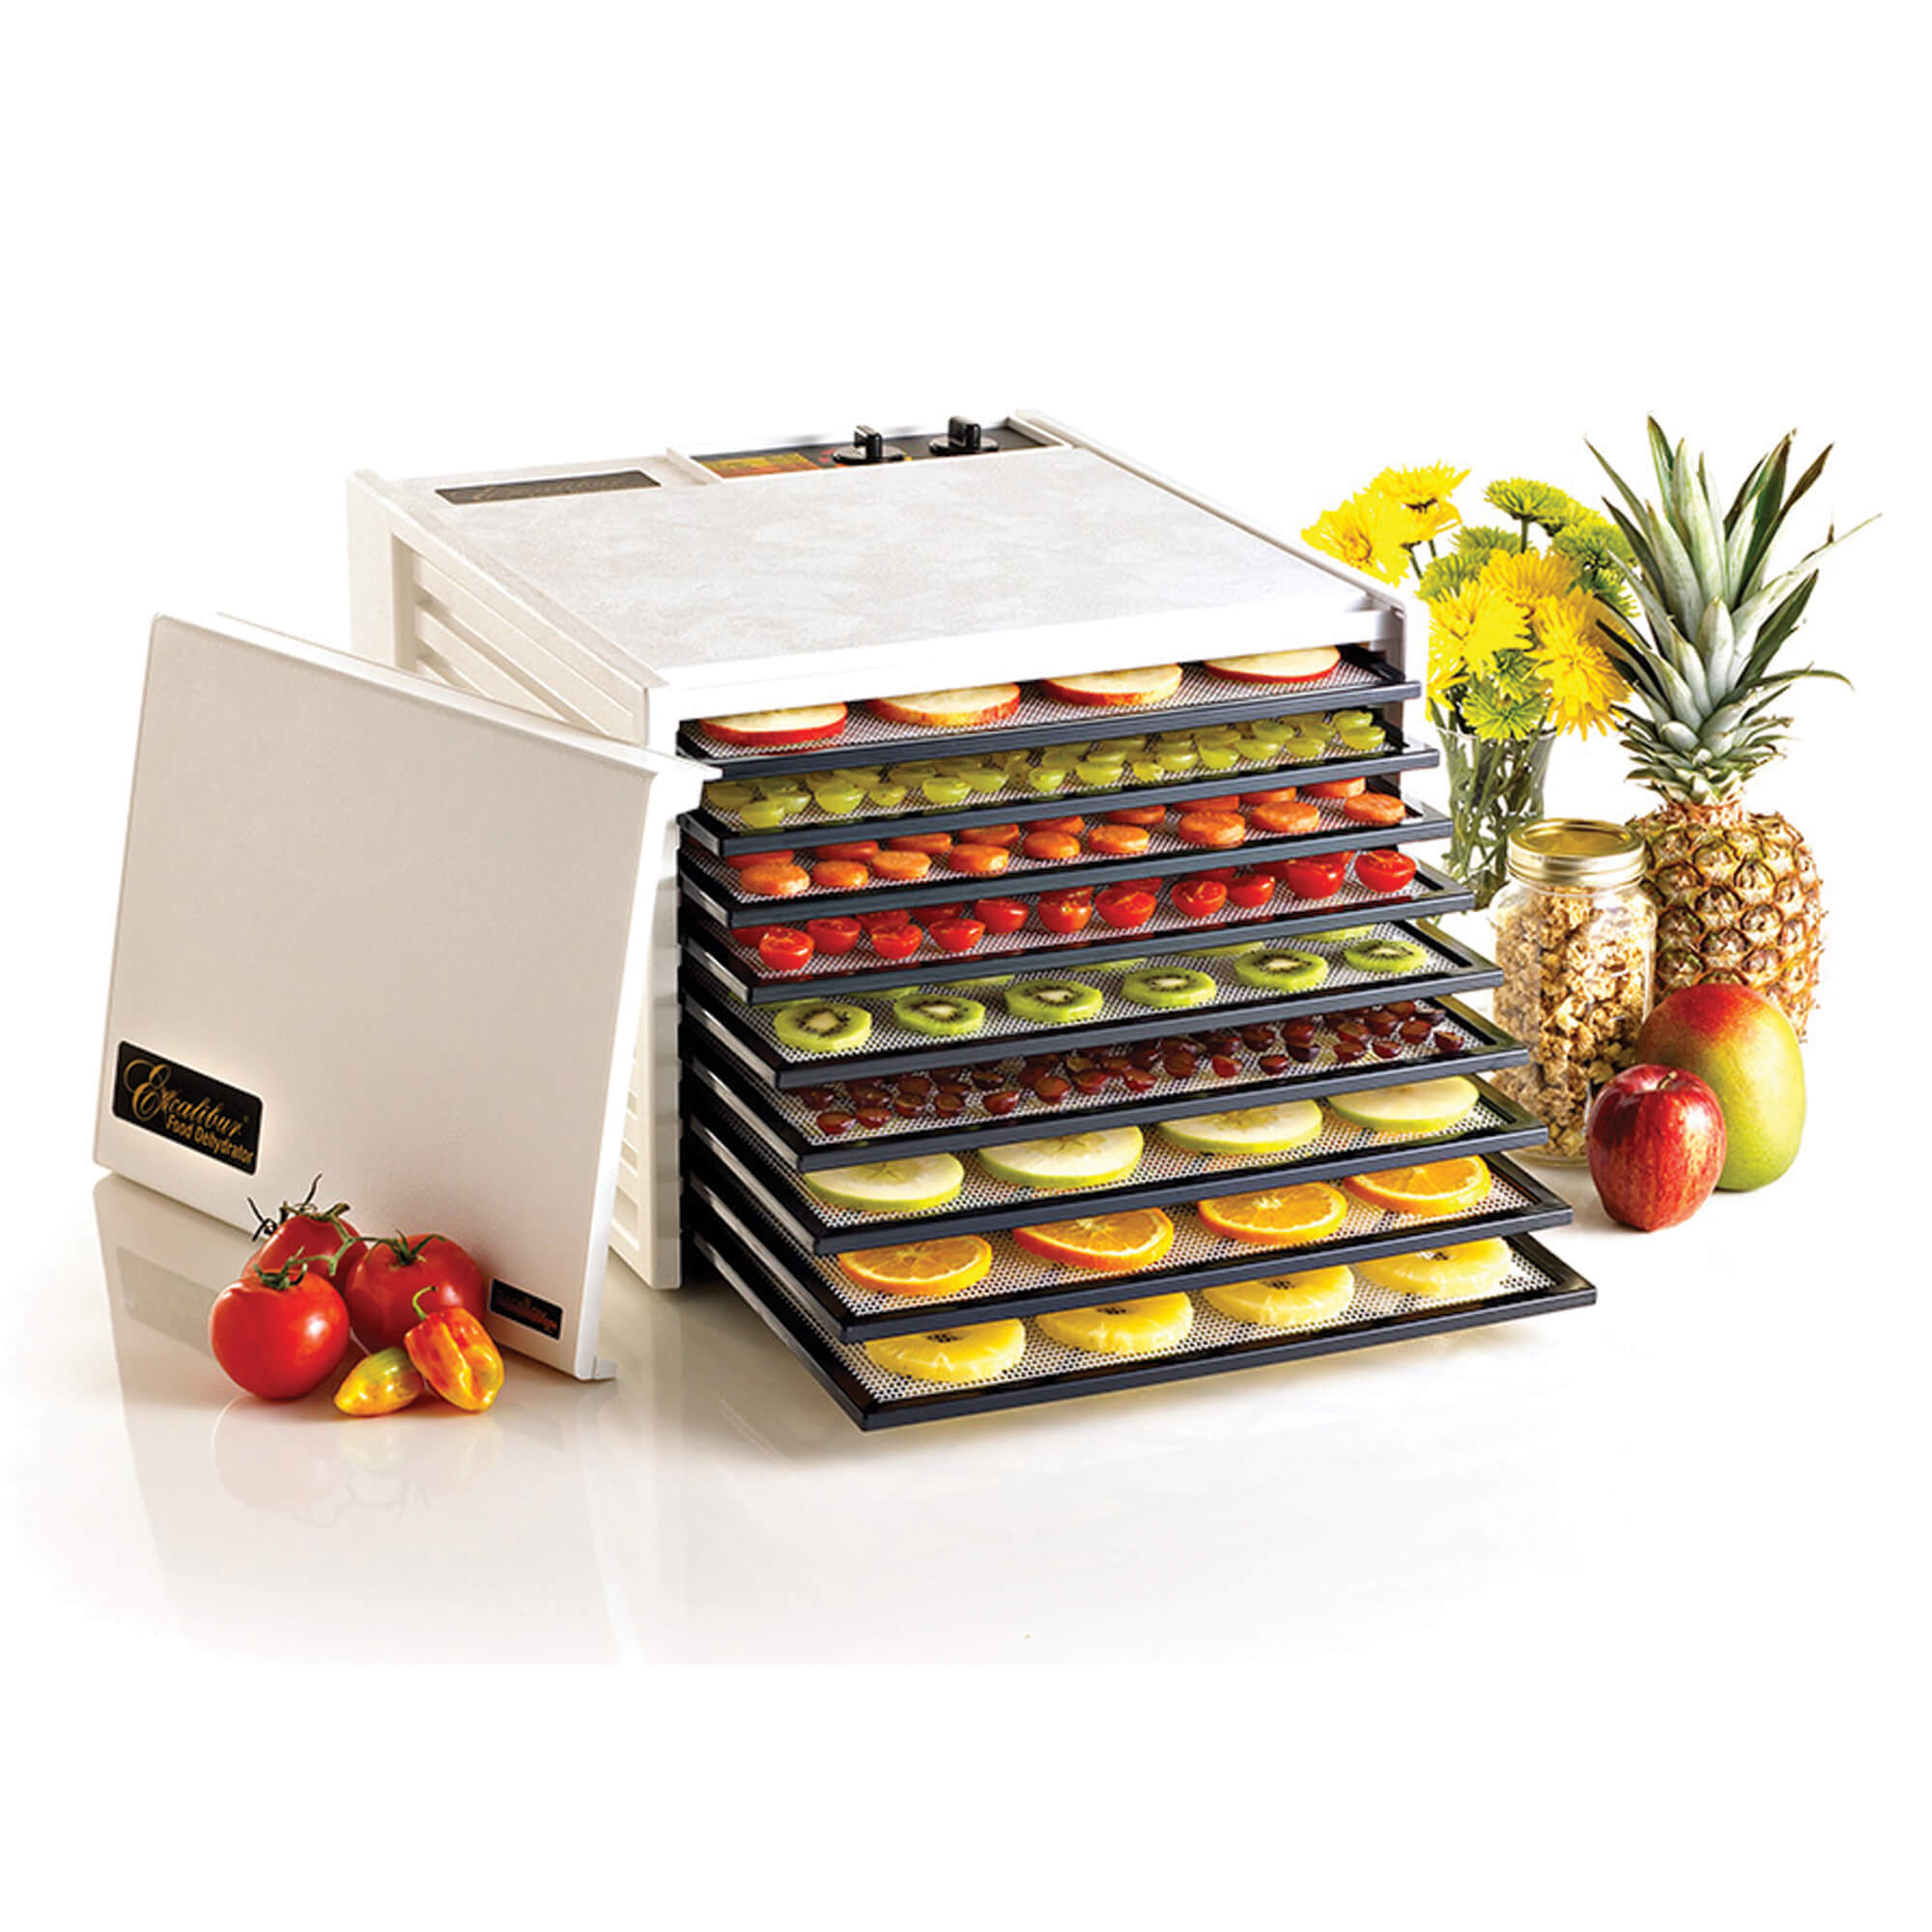 Excalibur 4926TW 9 tray dehydrator with door propped to the side, and an assortment of fruit on the trays.